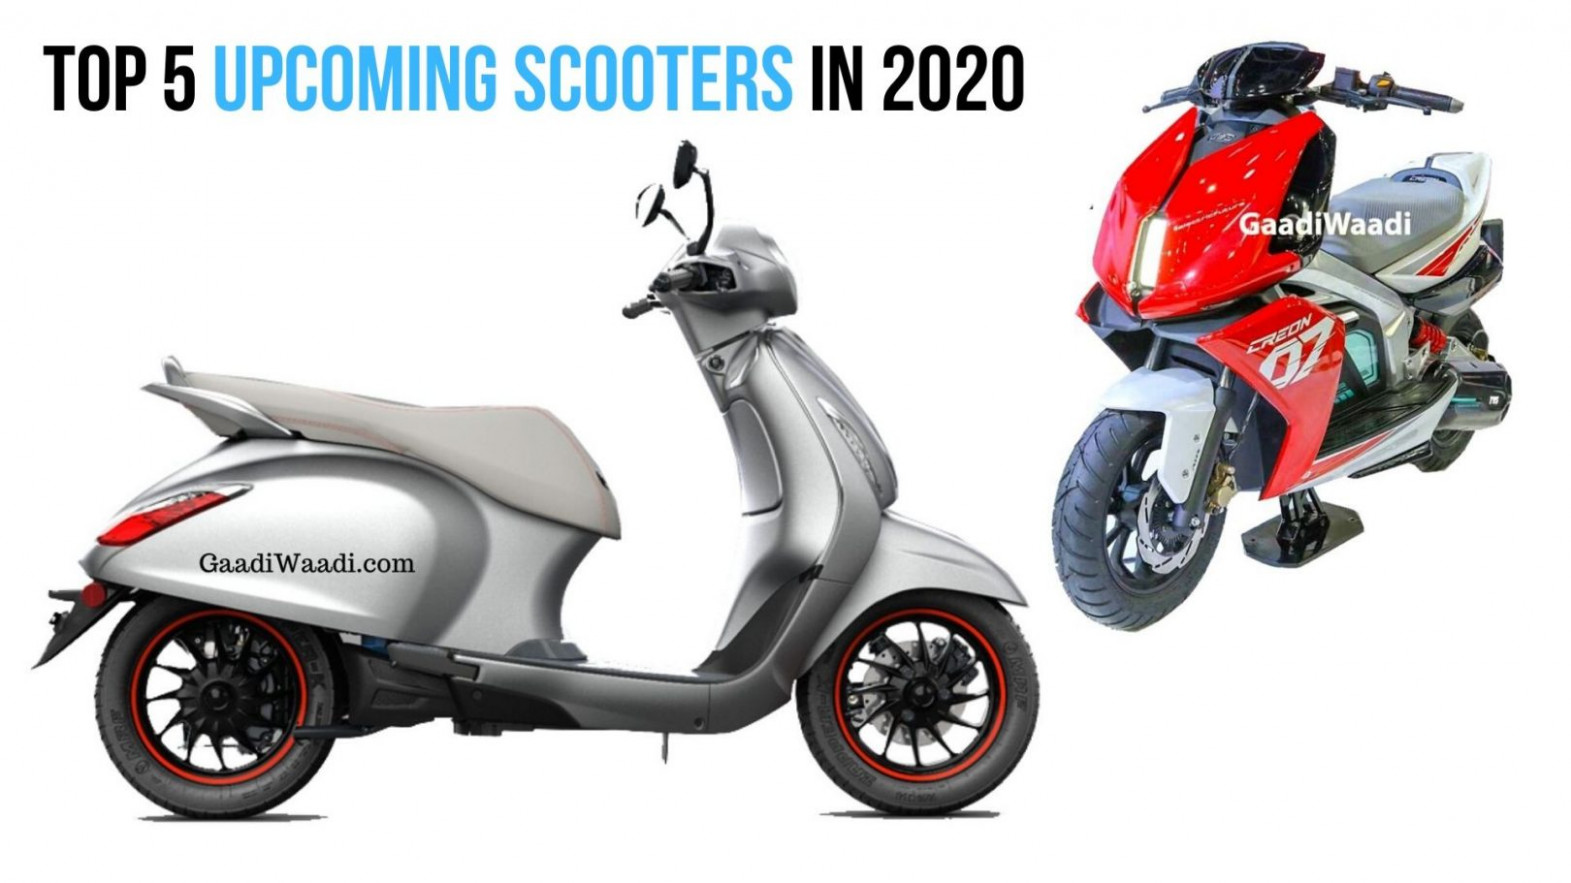 Top 7 Upcoming Scooters In 7 - Activa 7G To Bajaj Chetak EV